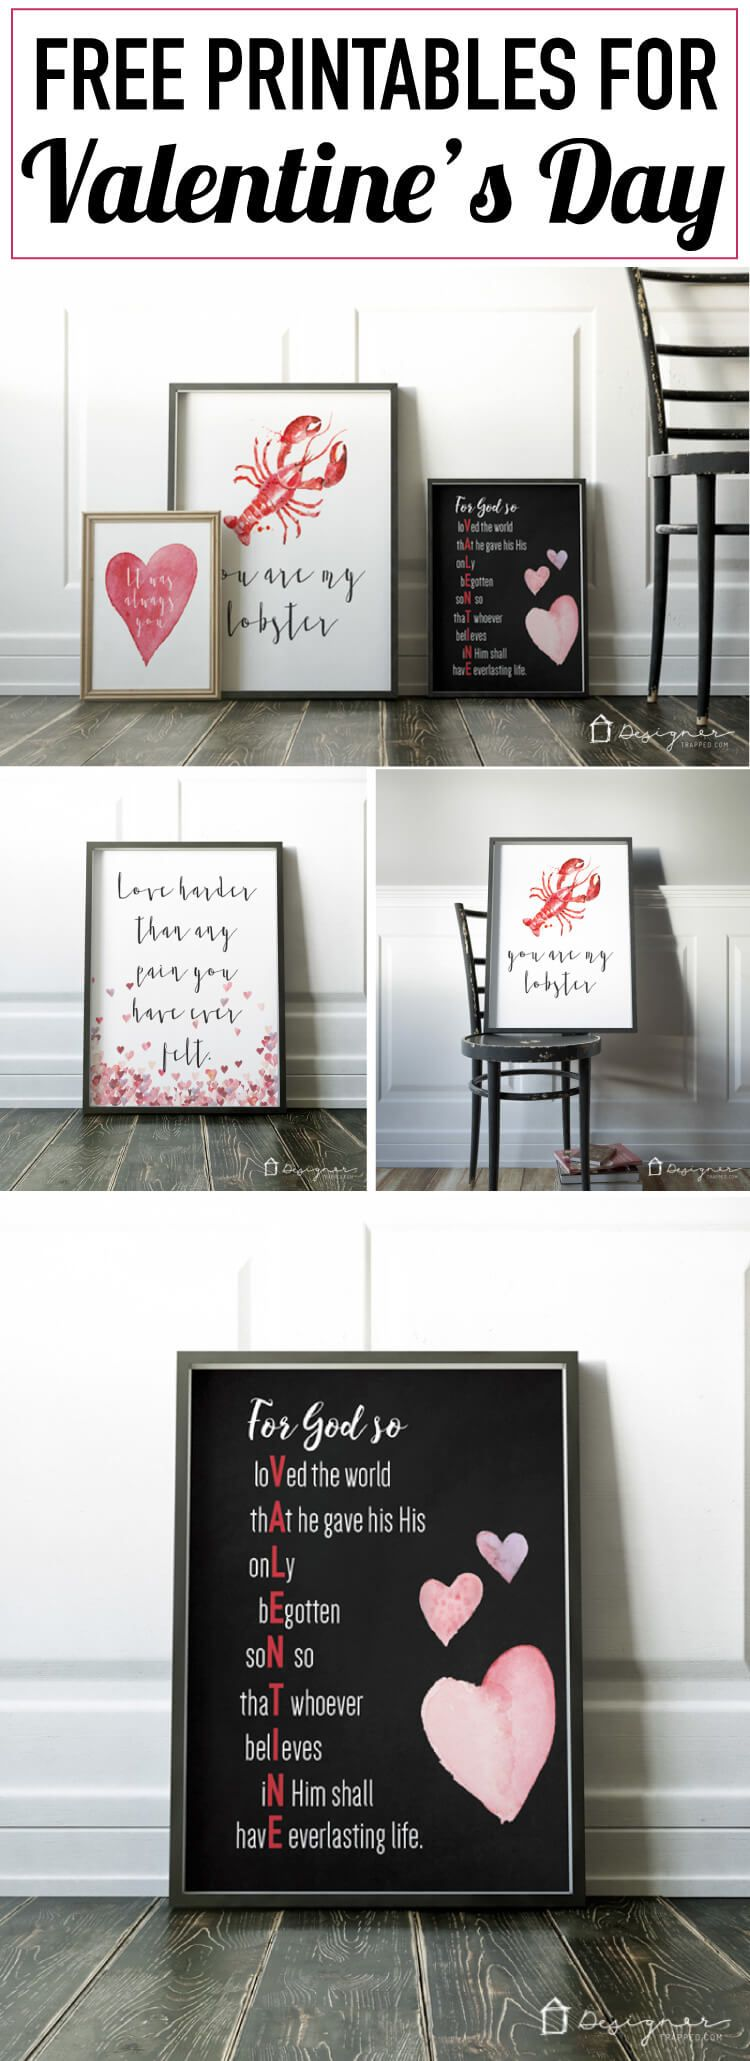 FREE Valentines Printables  Printing Free and Cant wait